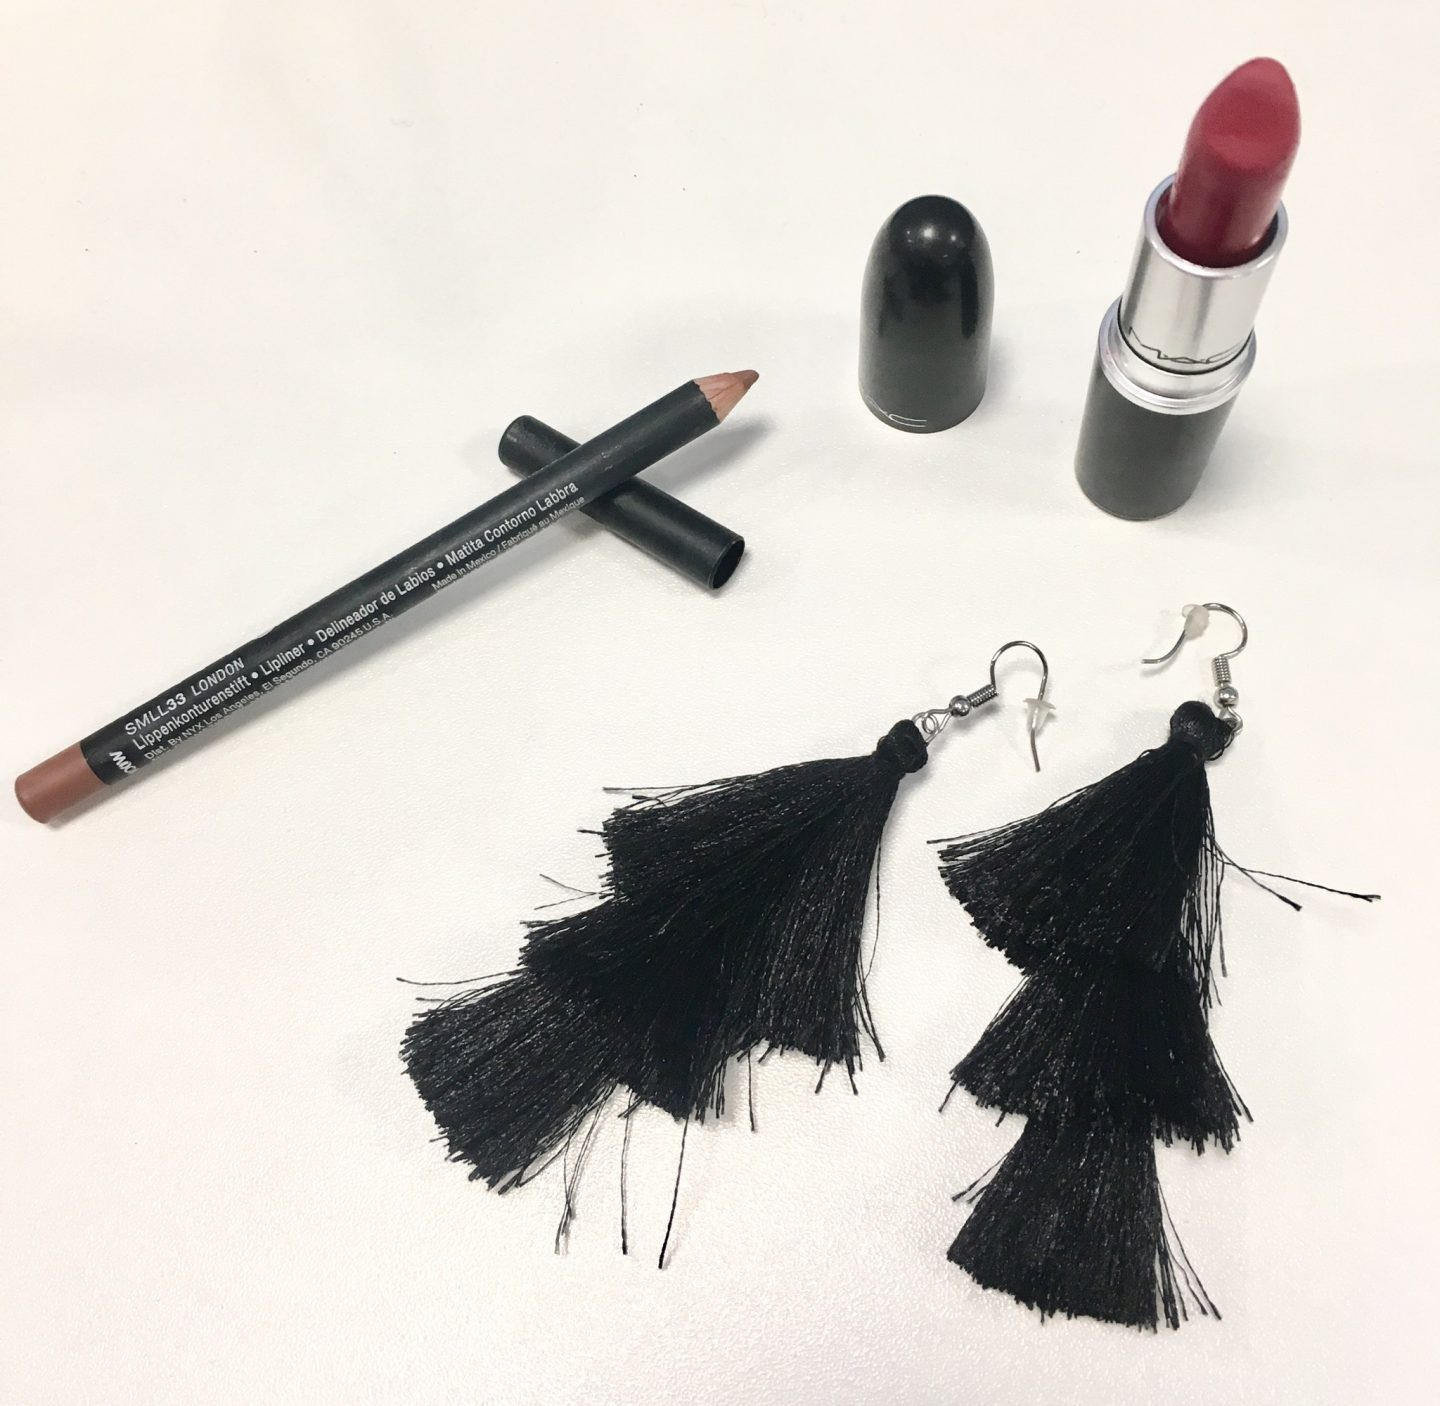 MAC ruby woo lipstick and NYX Suede Lip Liner in London